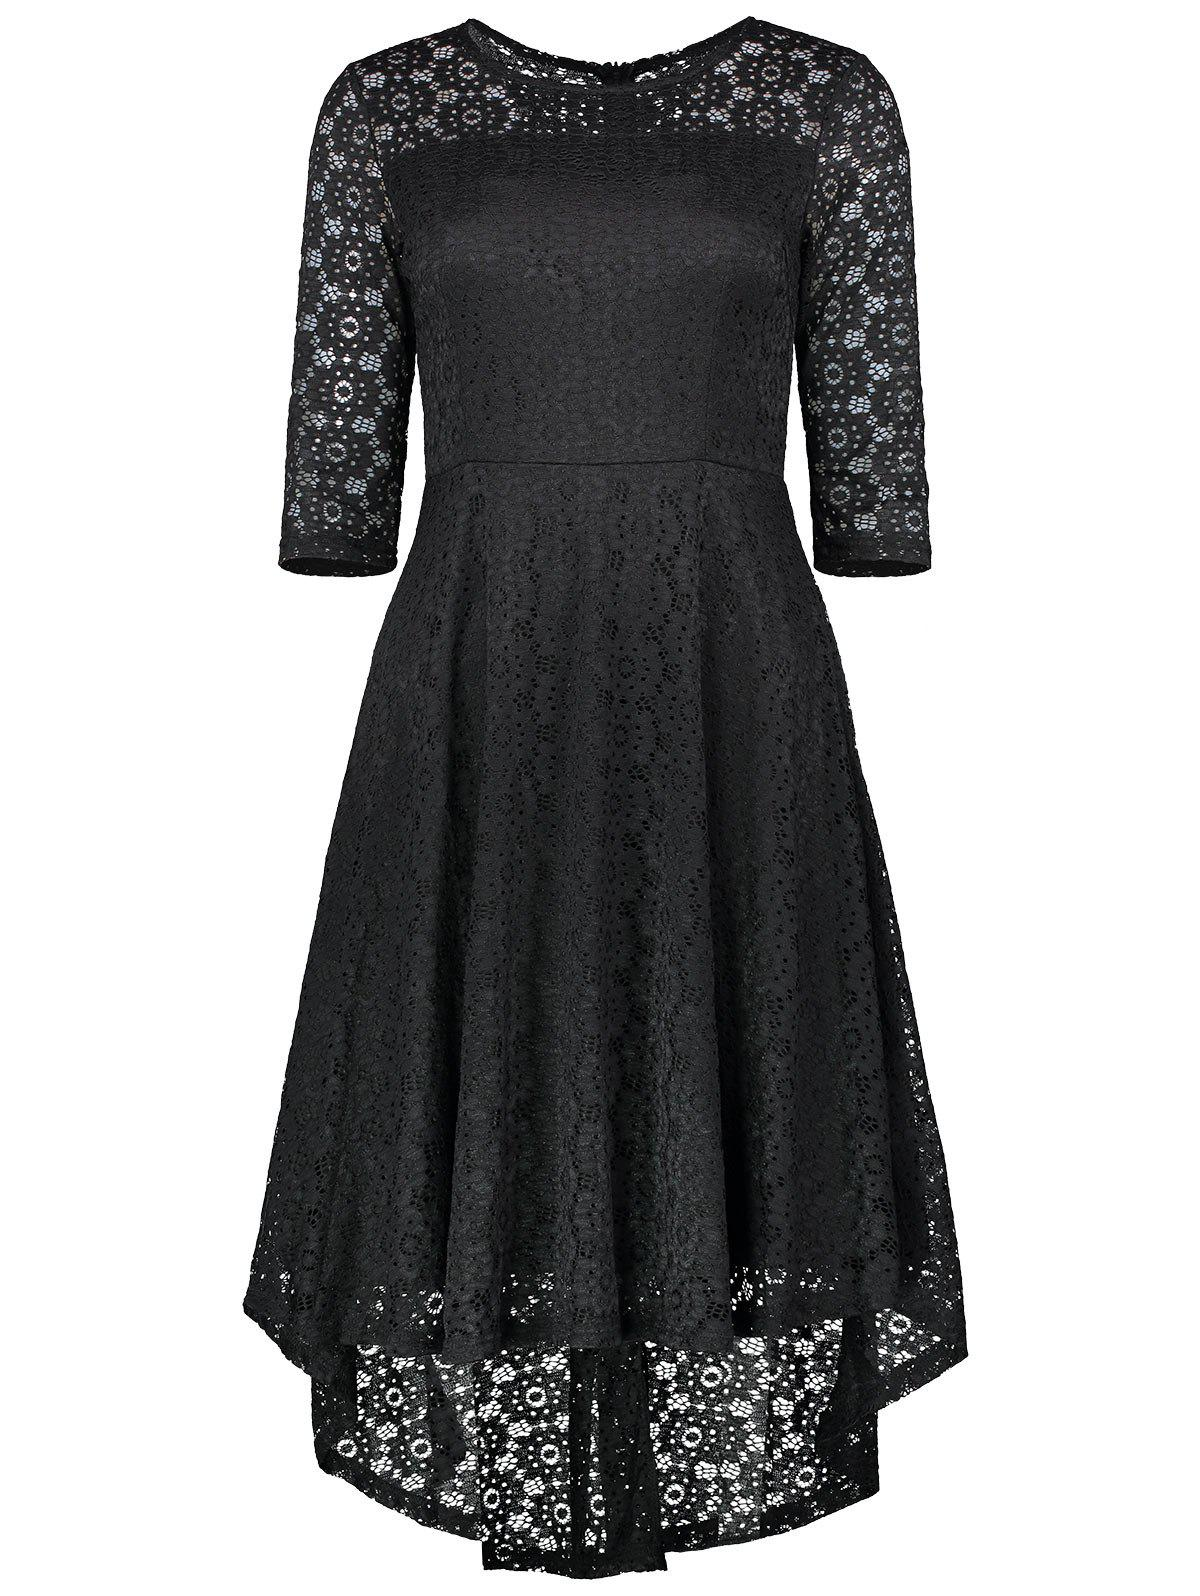 Dentelle Crochet High Low Midi A Line Dress - Noir S